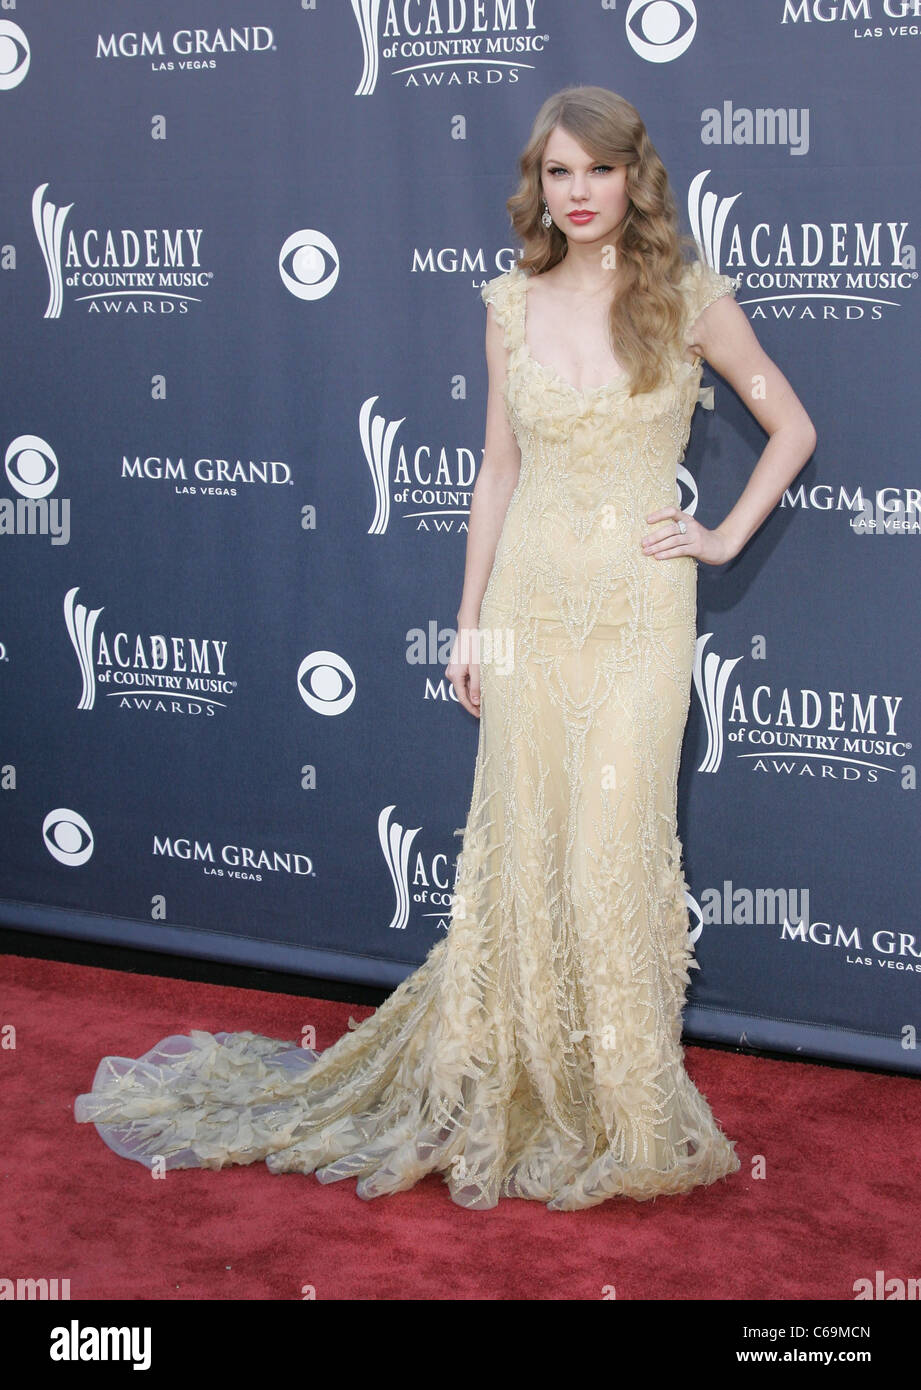 Taylor Swift (wearing a dress by Elie Saab) at arrivals for Academy ...